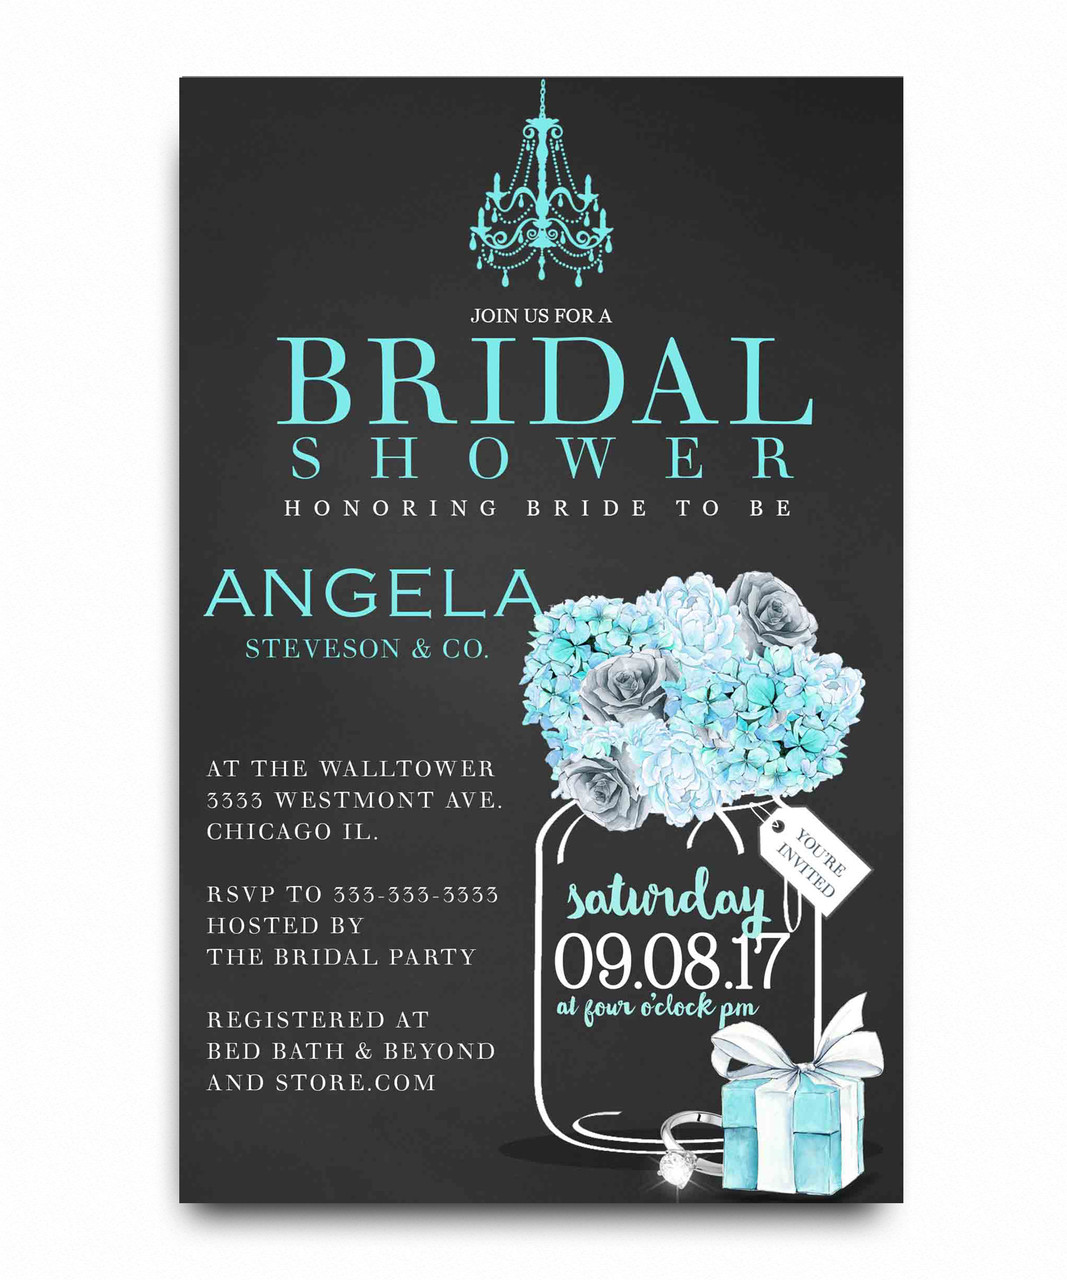 Bride magazine bridal shower invitation tiffany blue bridal shower breakfast at tiffanys gift box flowers lingerie filmwisefo Choice Image